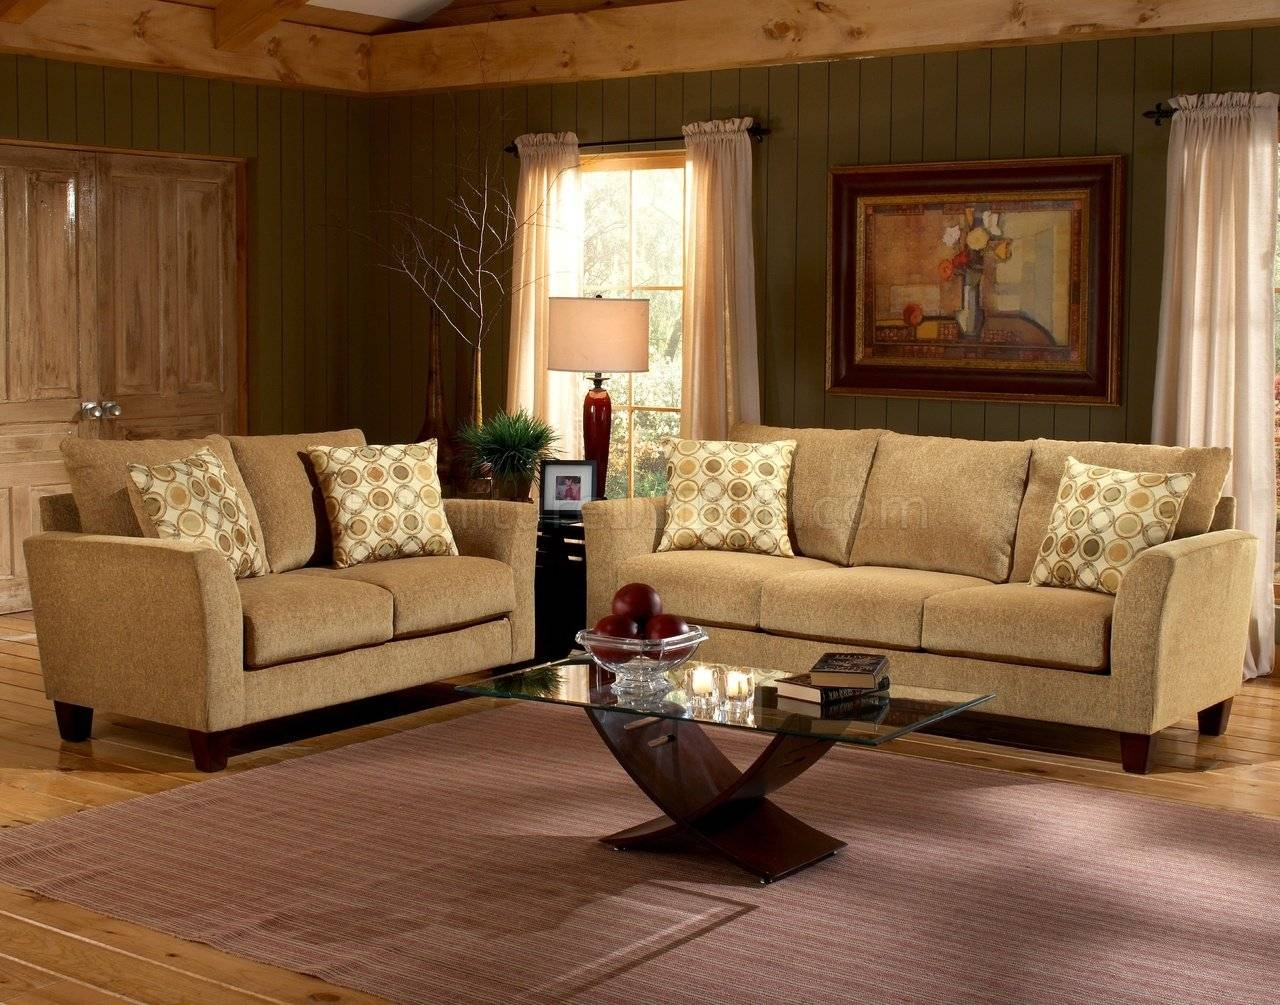 Barton Camel Fabric Casual Living Room Sofa & Loveseat Set for Camel Color Sofas (Image 2 of 15)